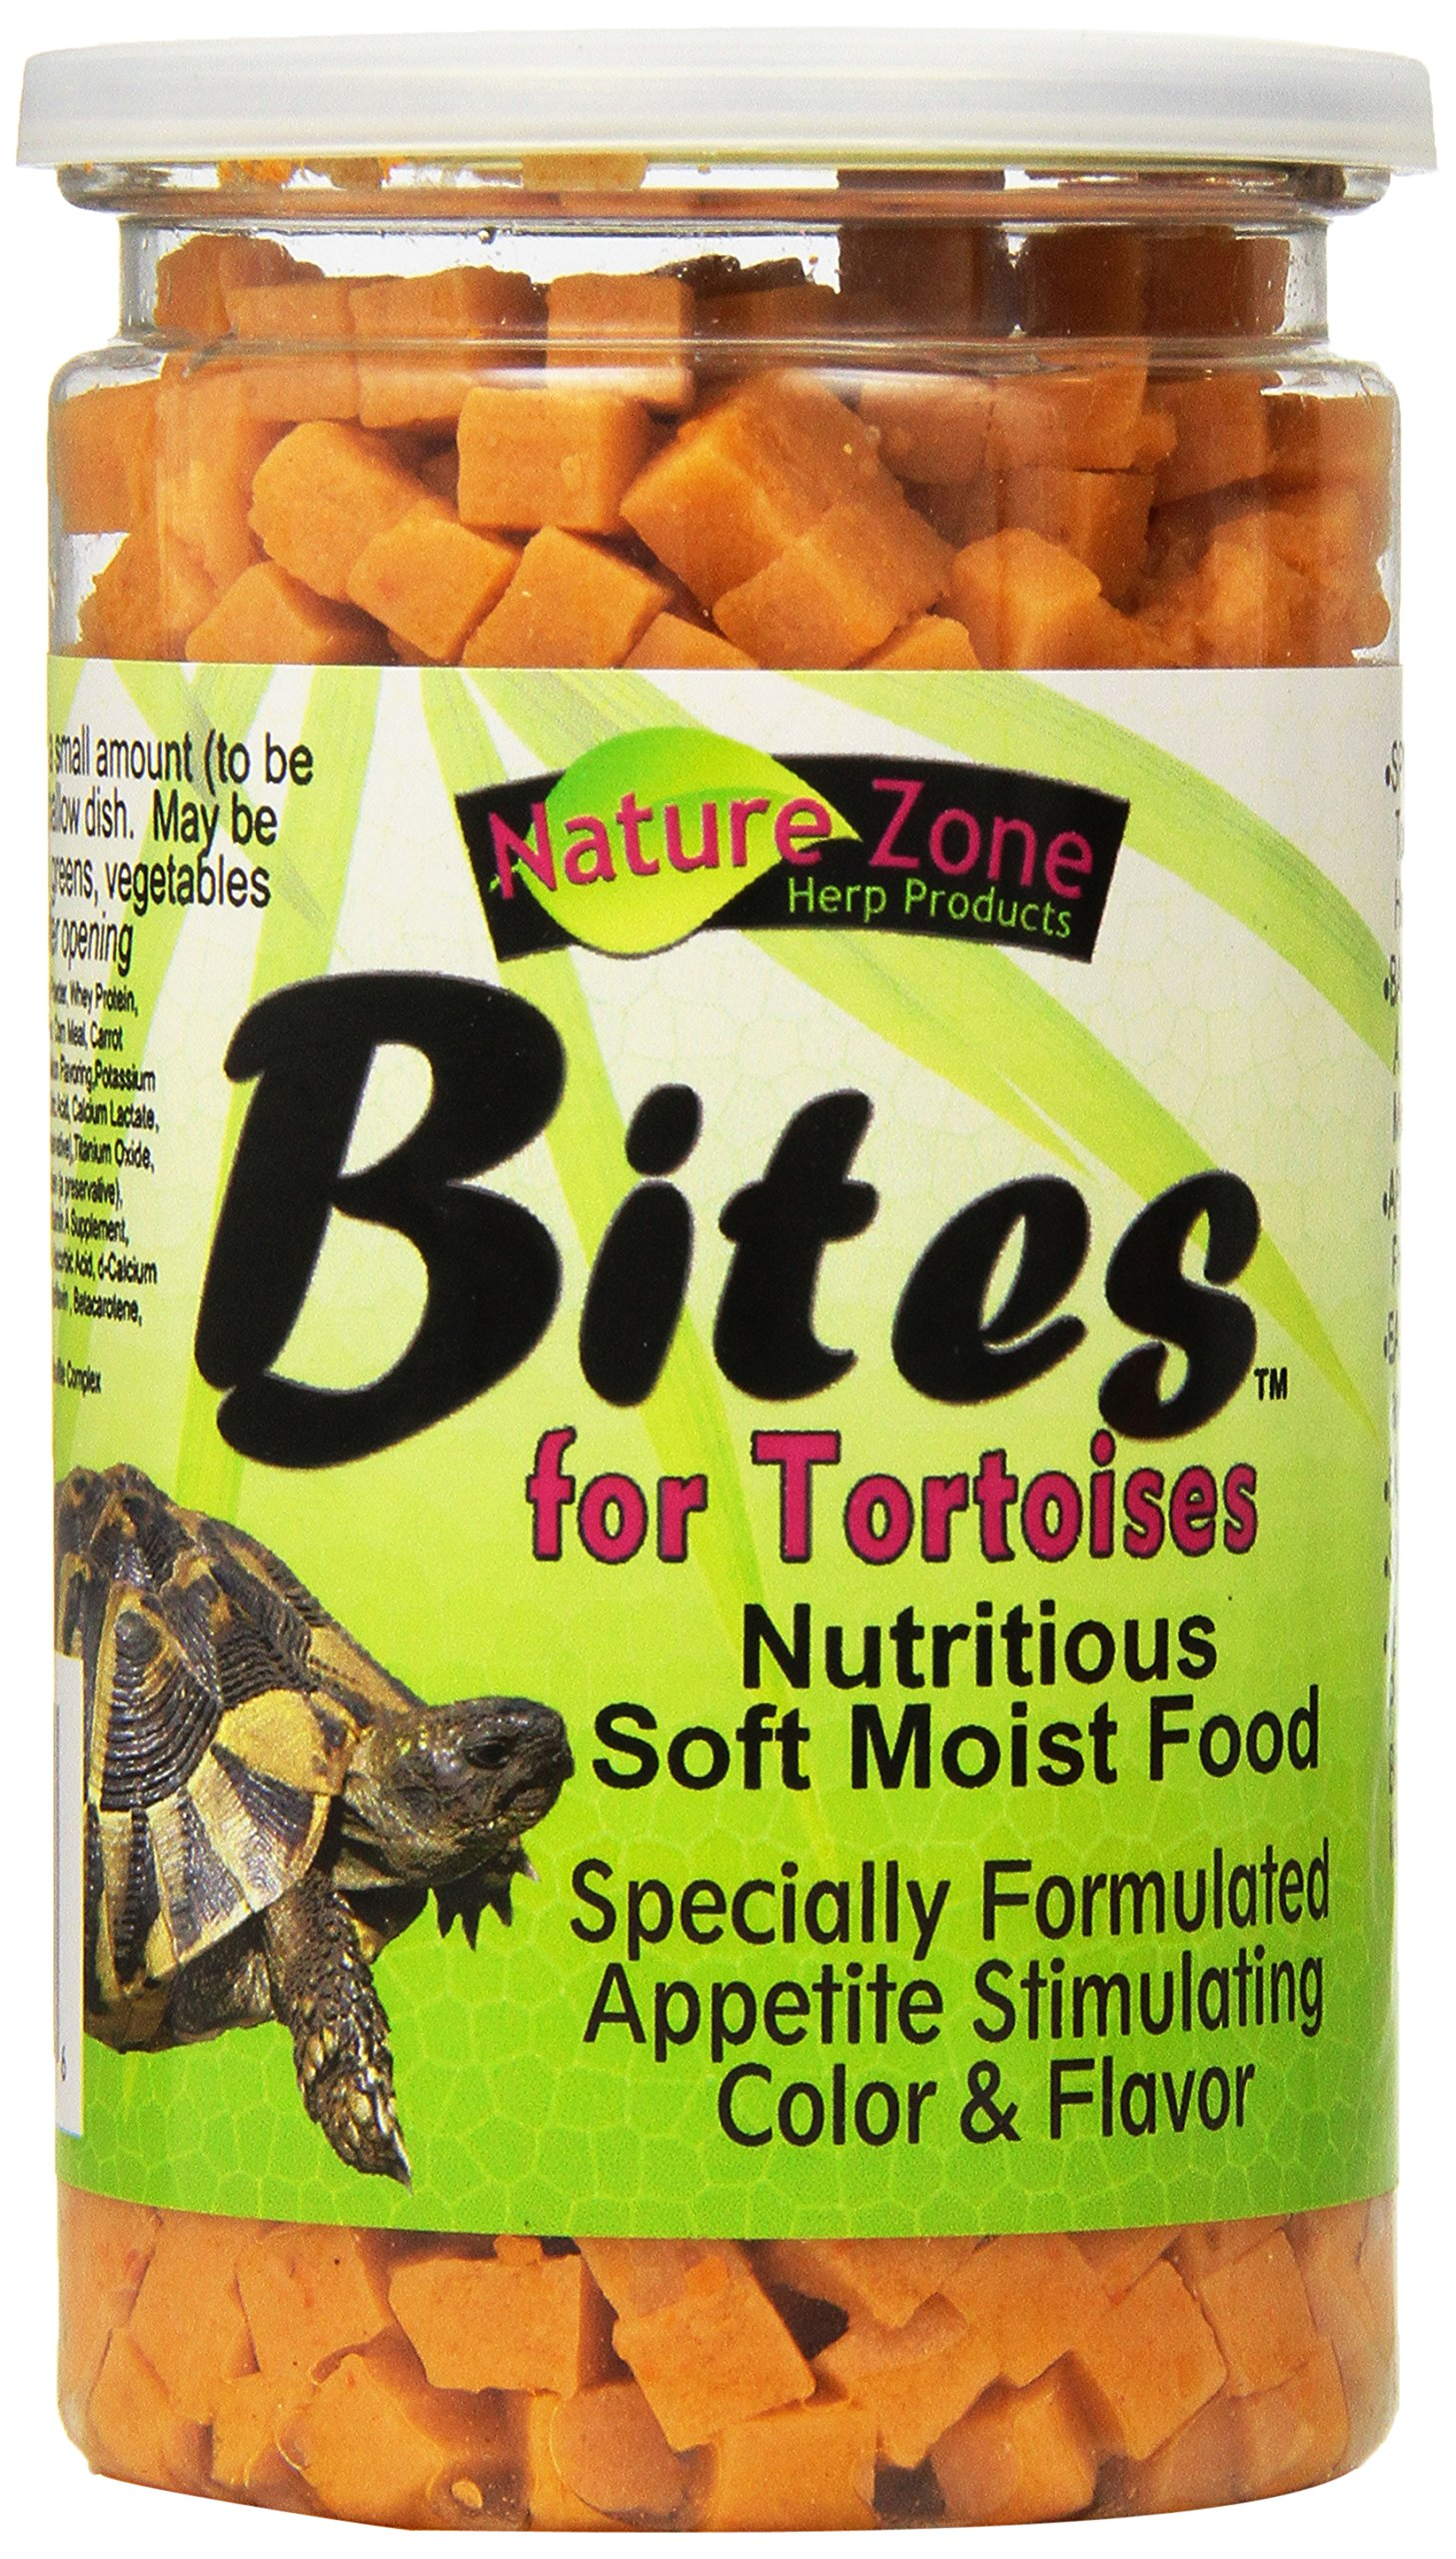 Nature Zone Snz54661 Melon Flavored Total Bites Soft Moist Food For Tortoise, 9-Ounce